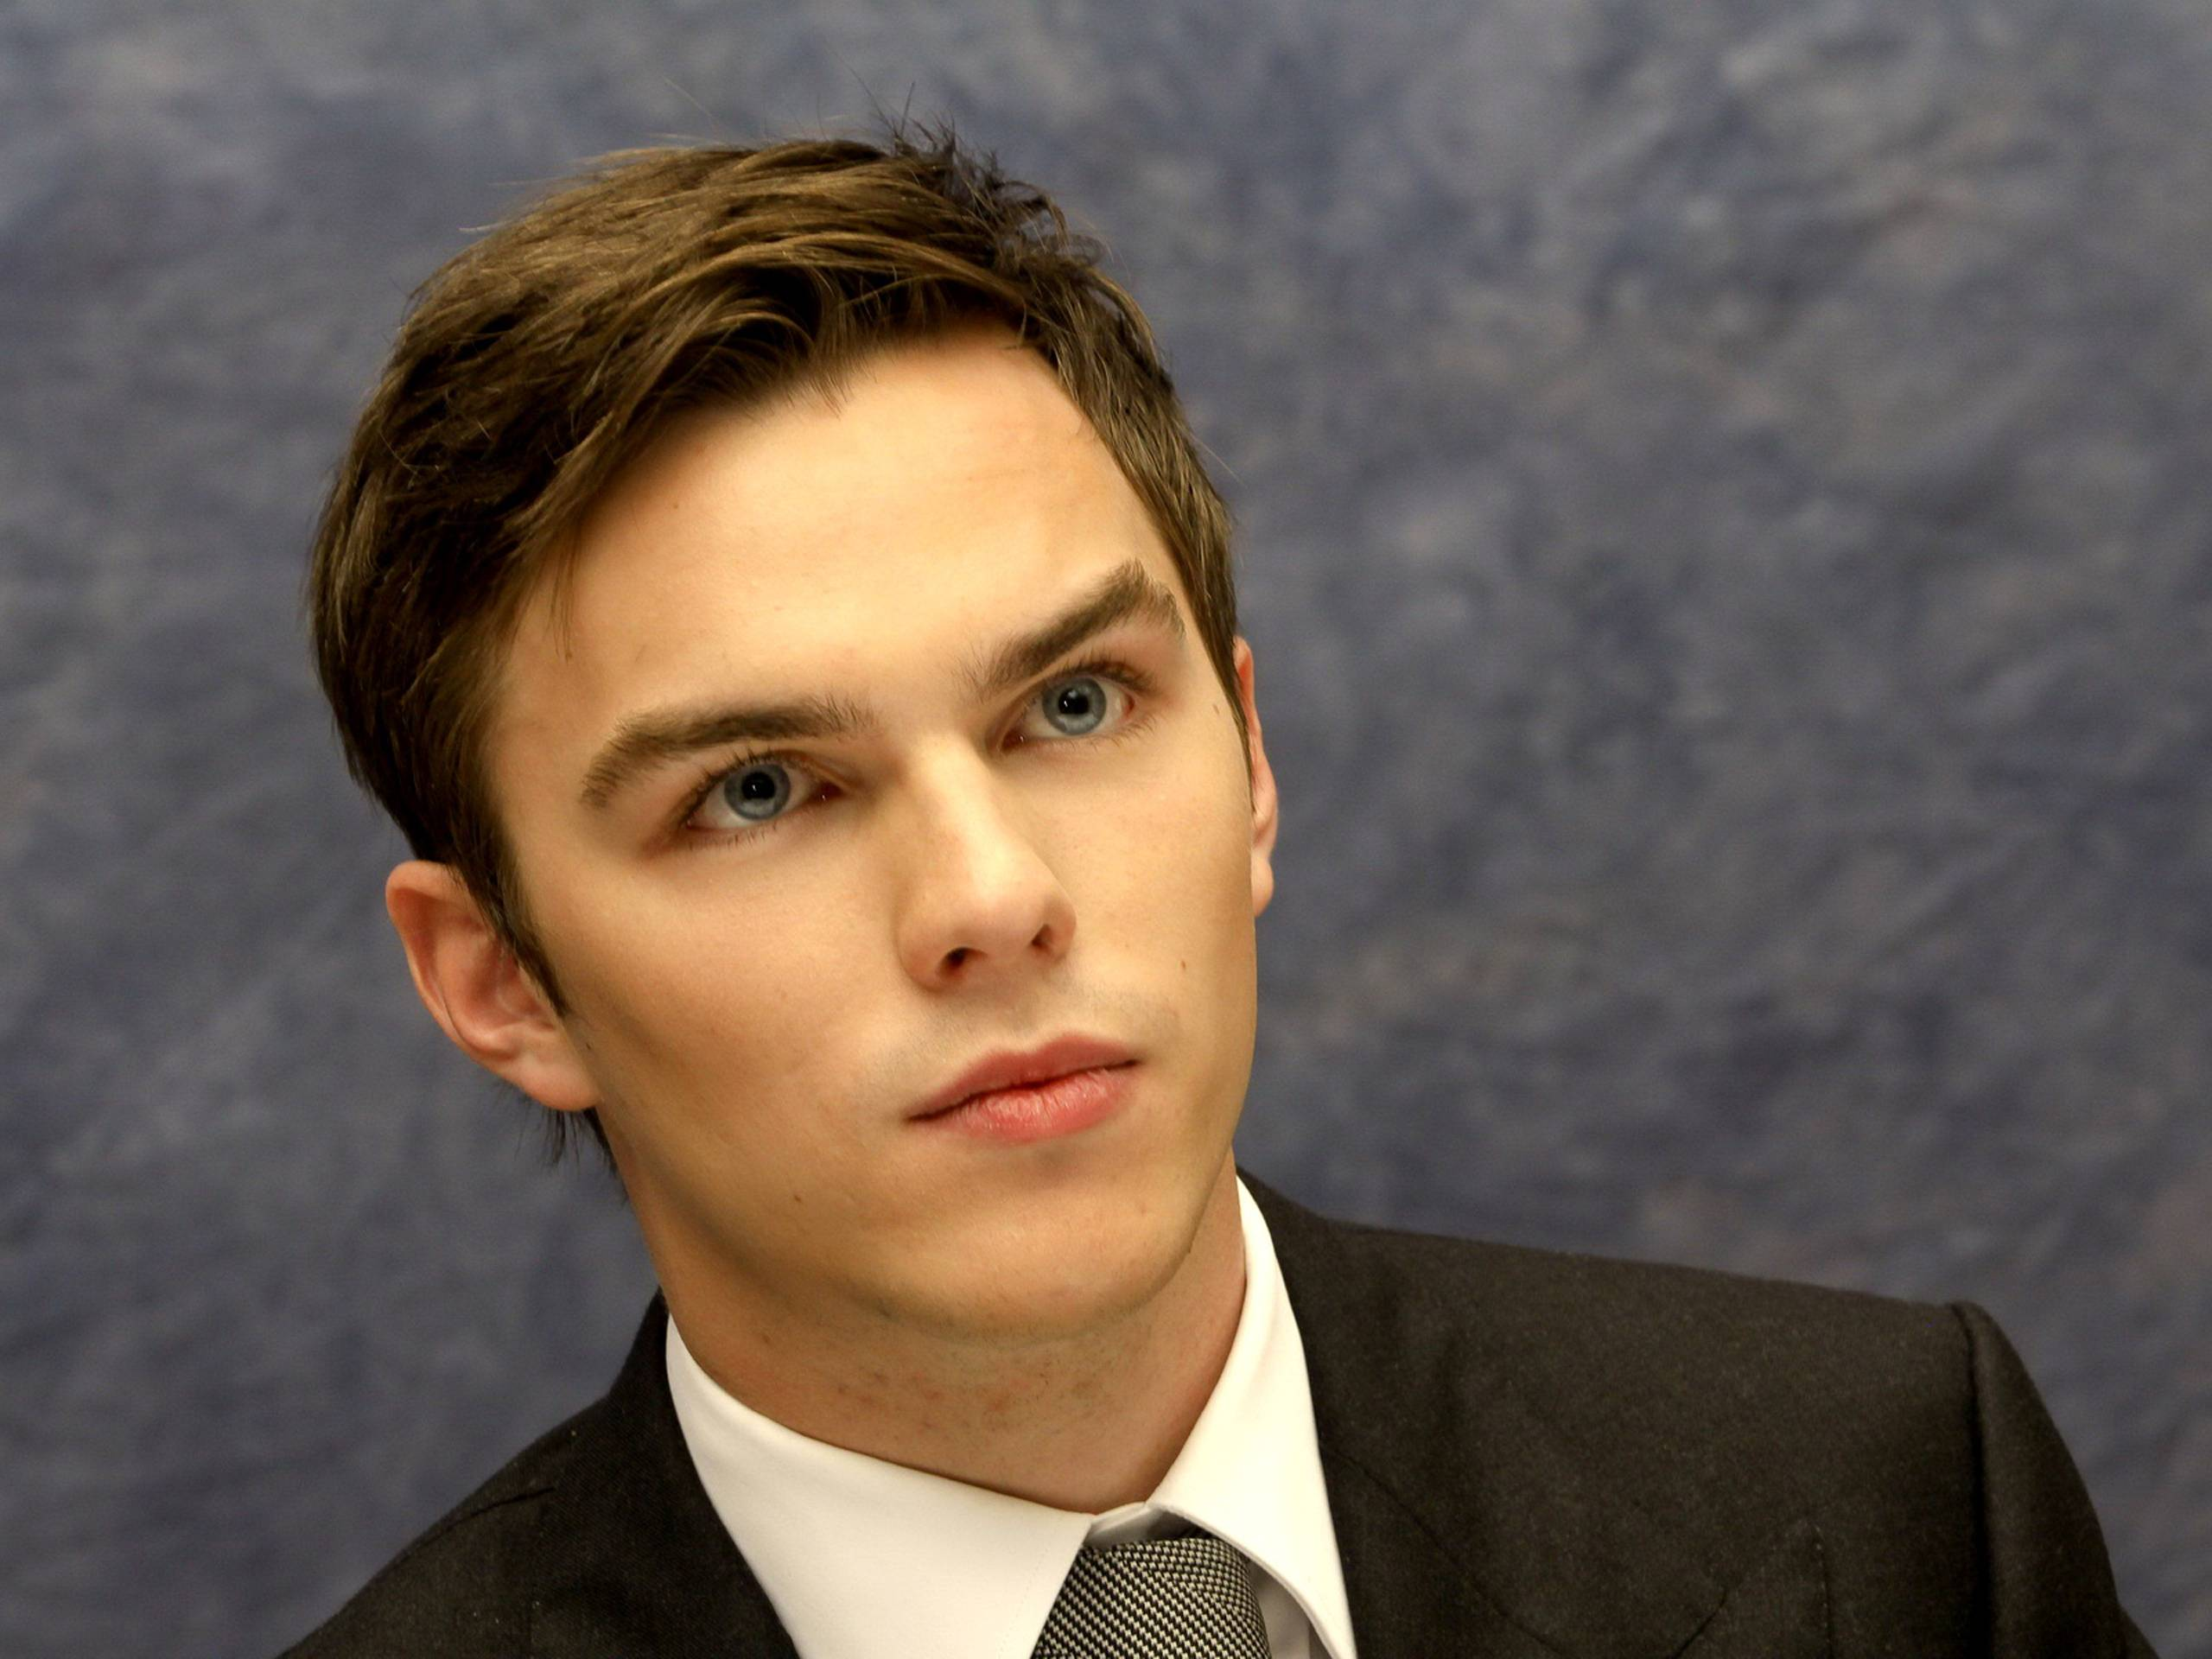 nicholas hoult wallpaper background - photo #31